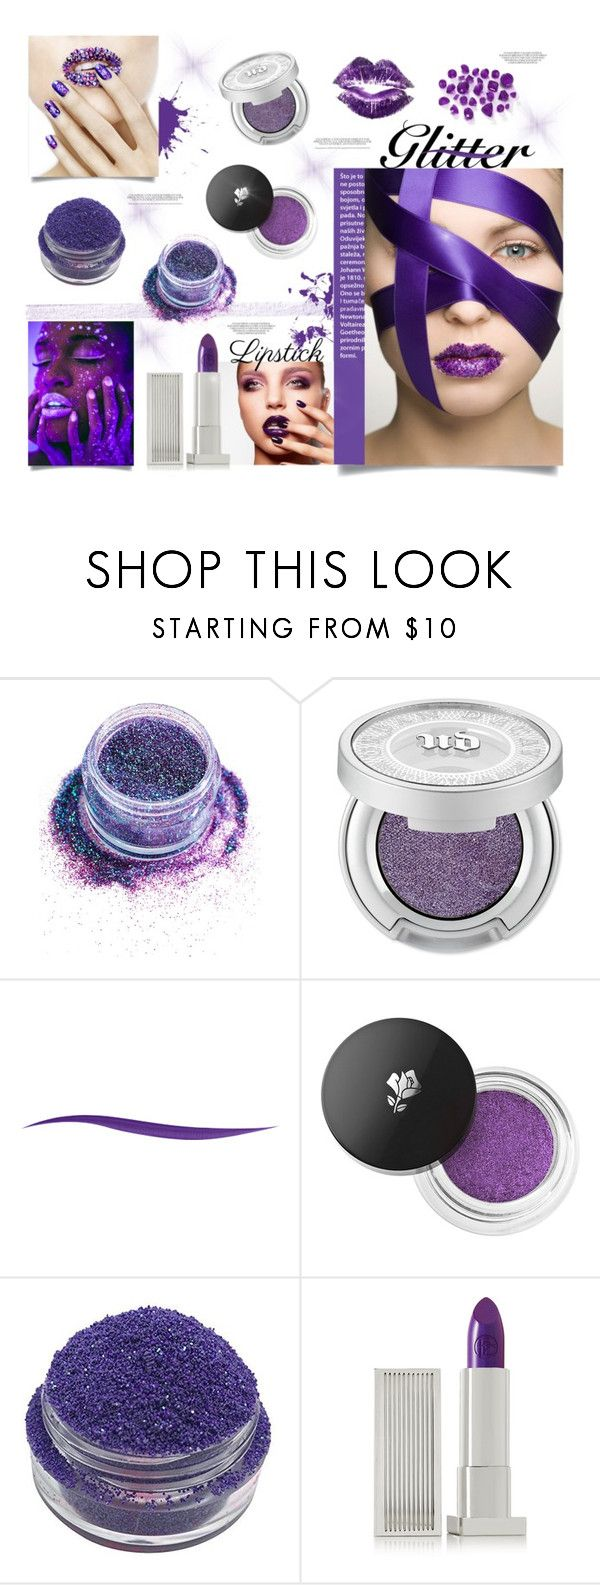 """""""Purple Glitter Lips"""" by ashleydawn2 ❤ liked on Polyvore featuring beauty, In Your Dreams, Urban Decay, Lancôme, Lipstick Queen and glitterlips"""